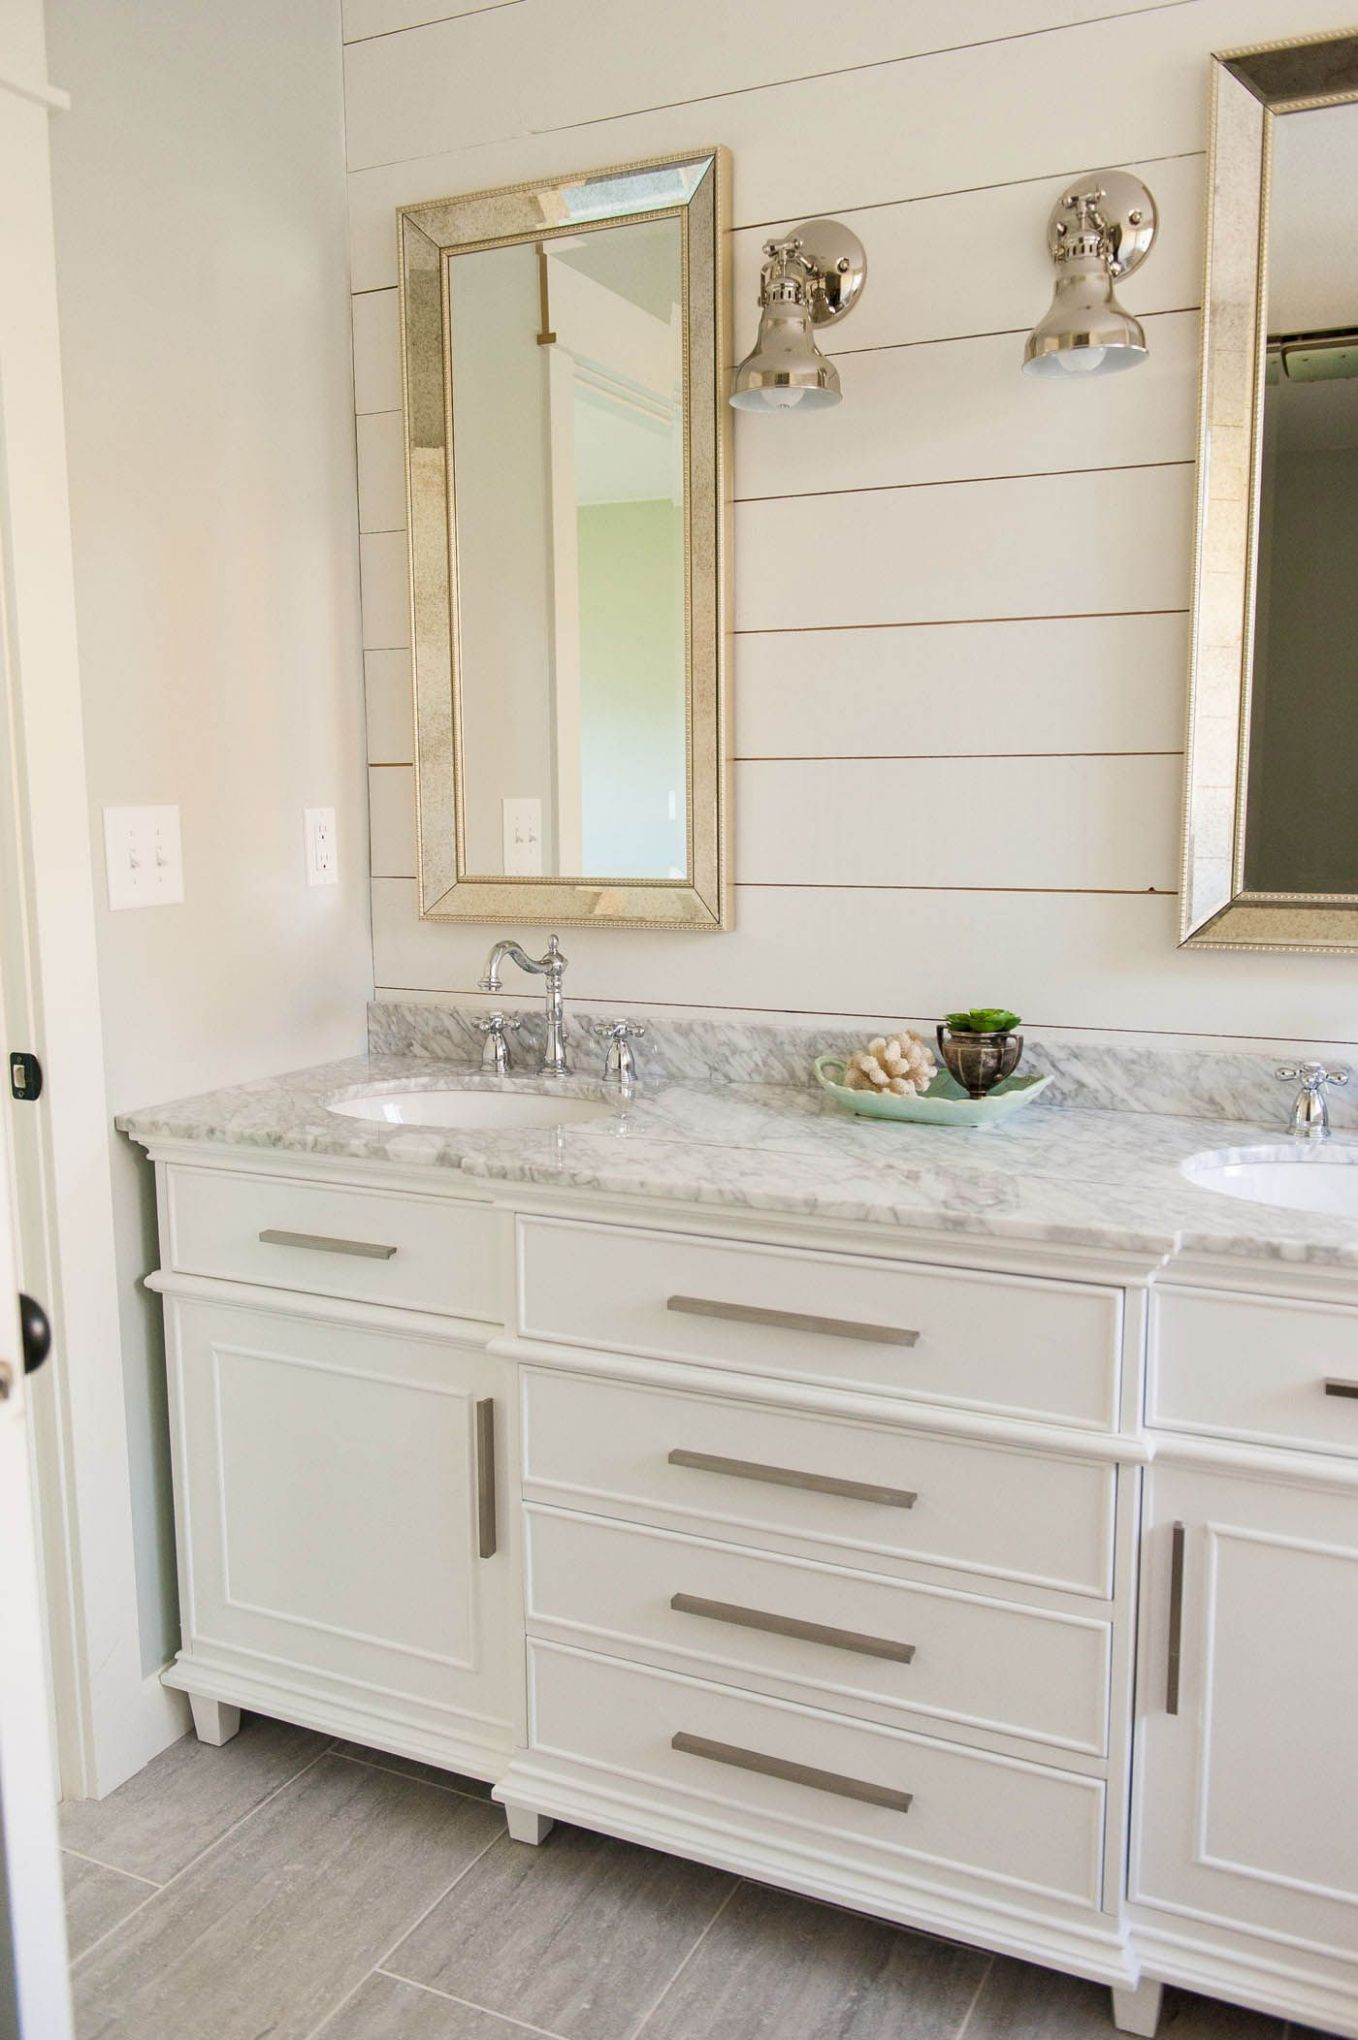 The Ultimate Guide to Buying a Bathroom Vanity | Best bathroom ..